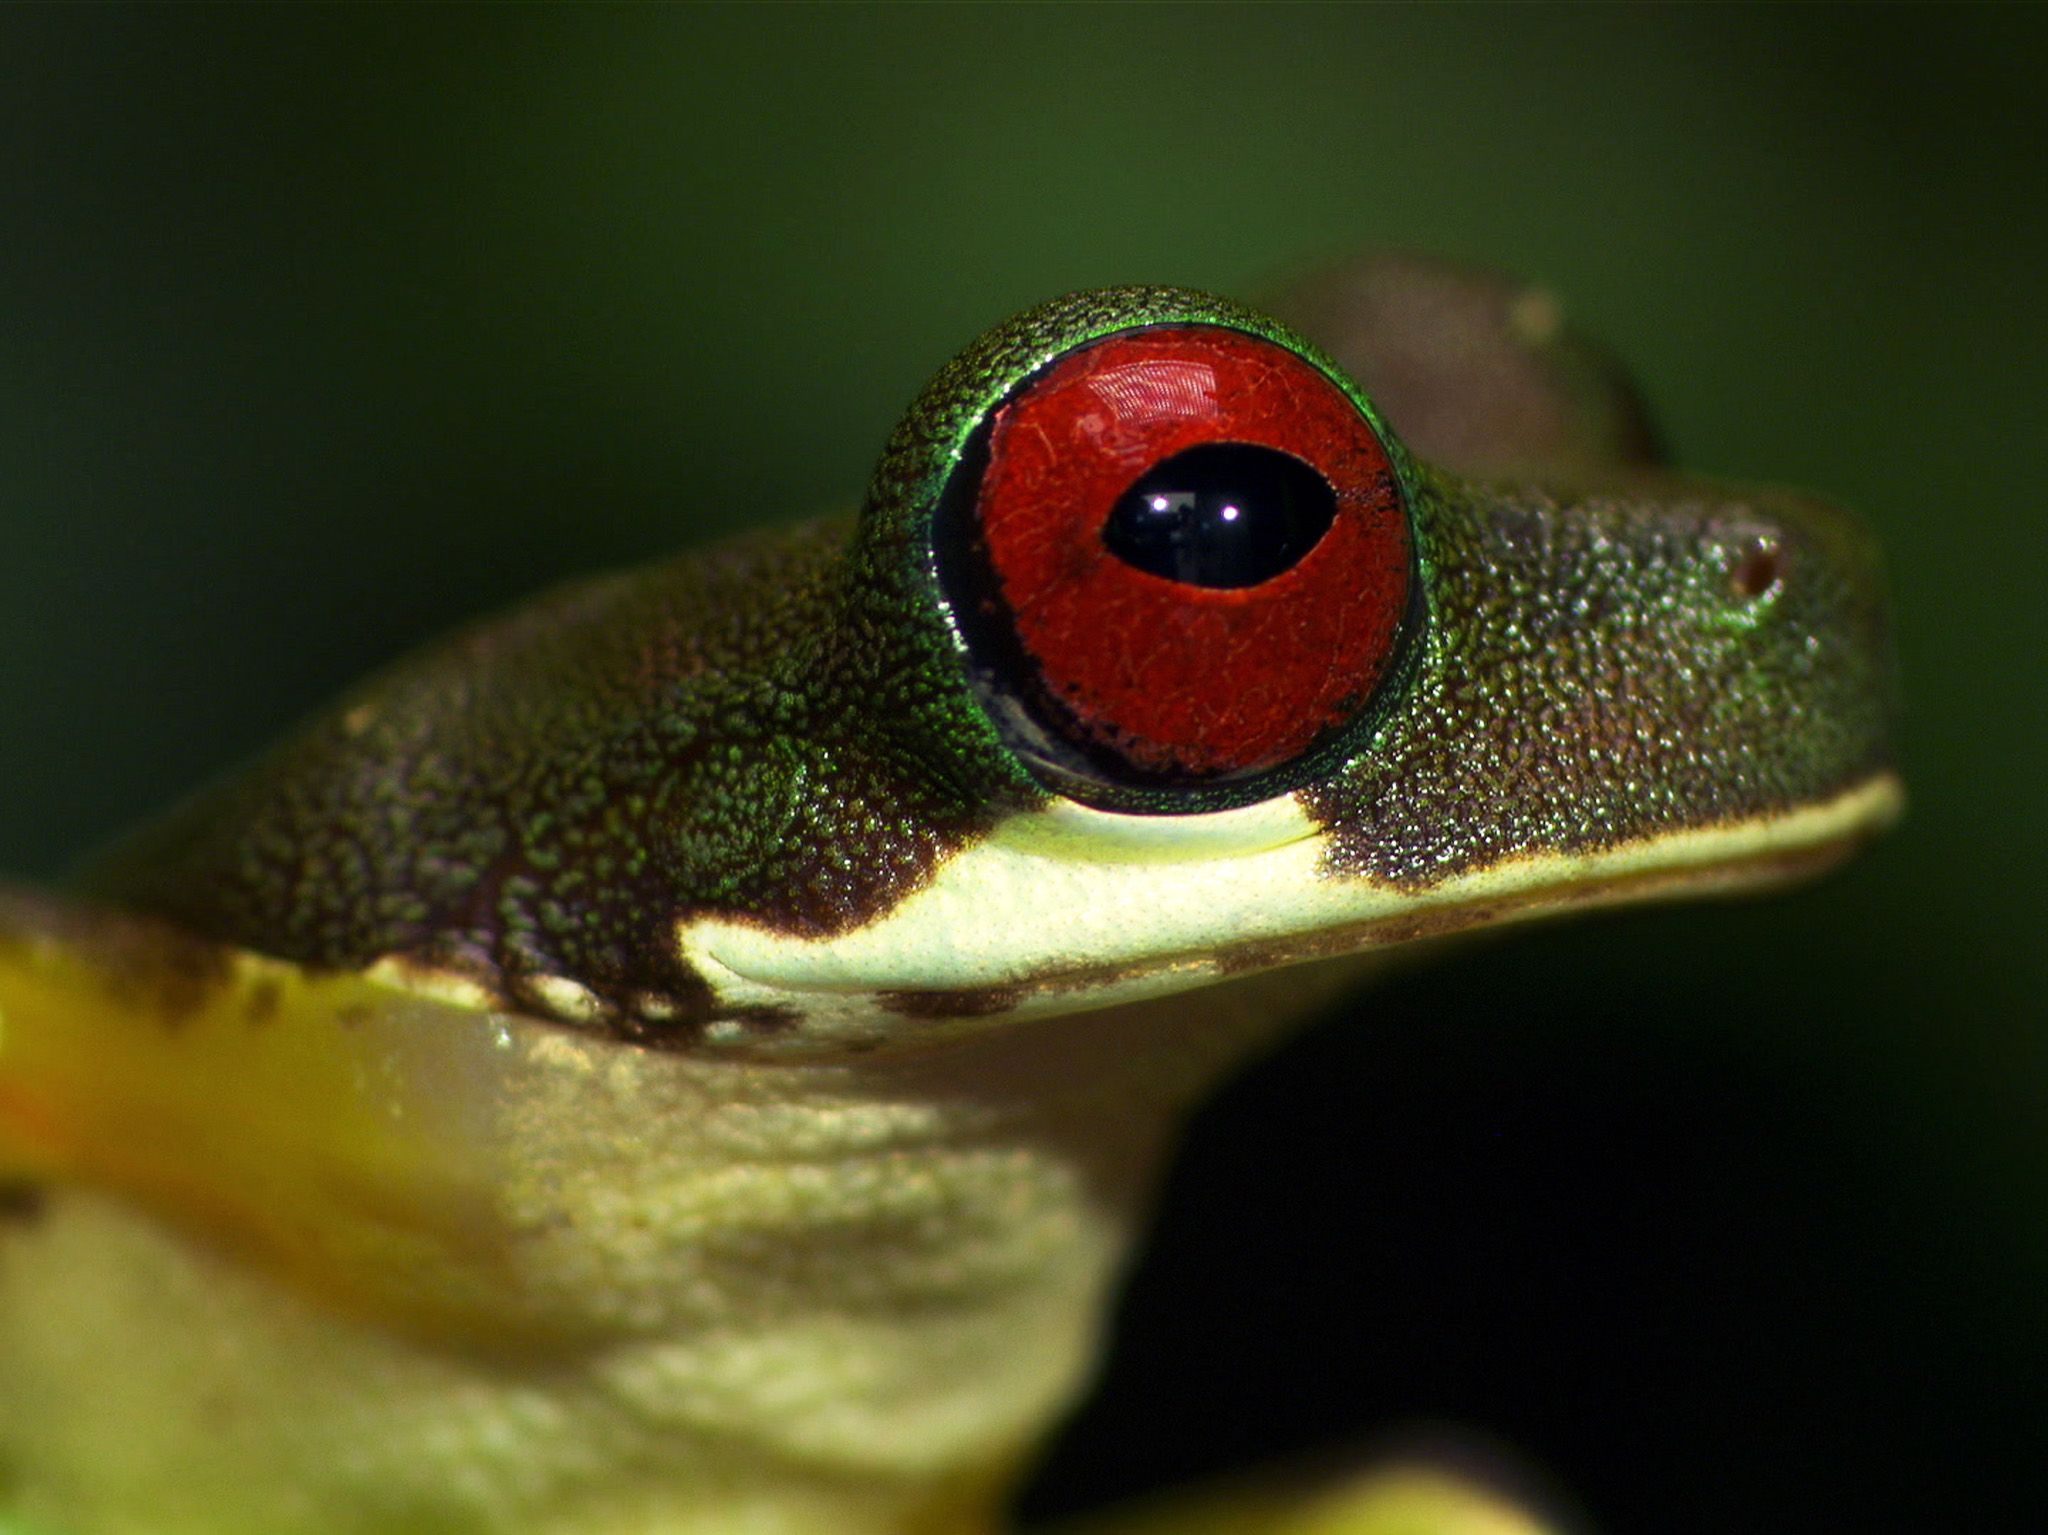 Costa Rica: A Red-eyed stream frog face. This image is from Wonderfully Weird. [Foto del giorno - ottobre 2017]